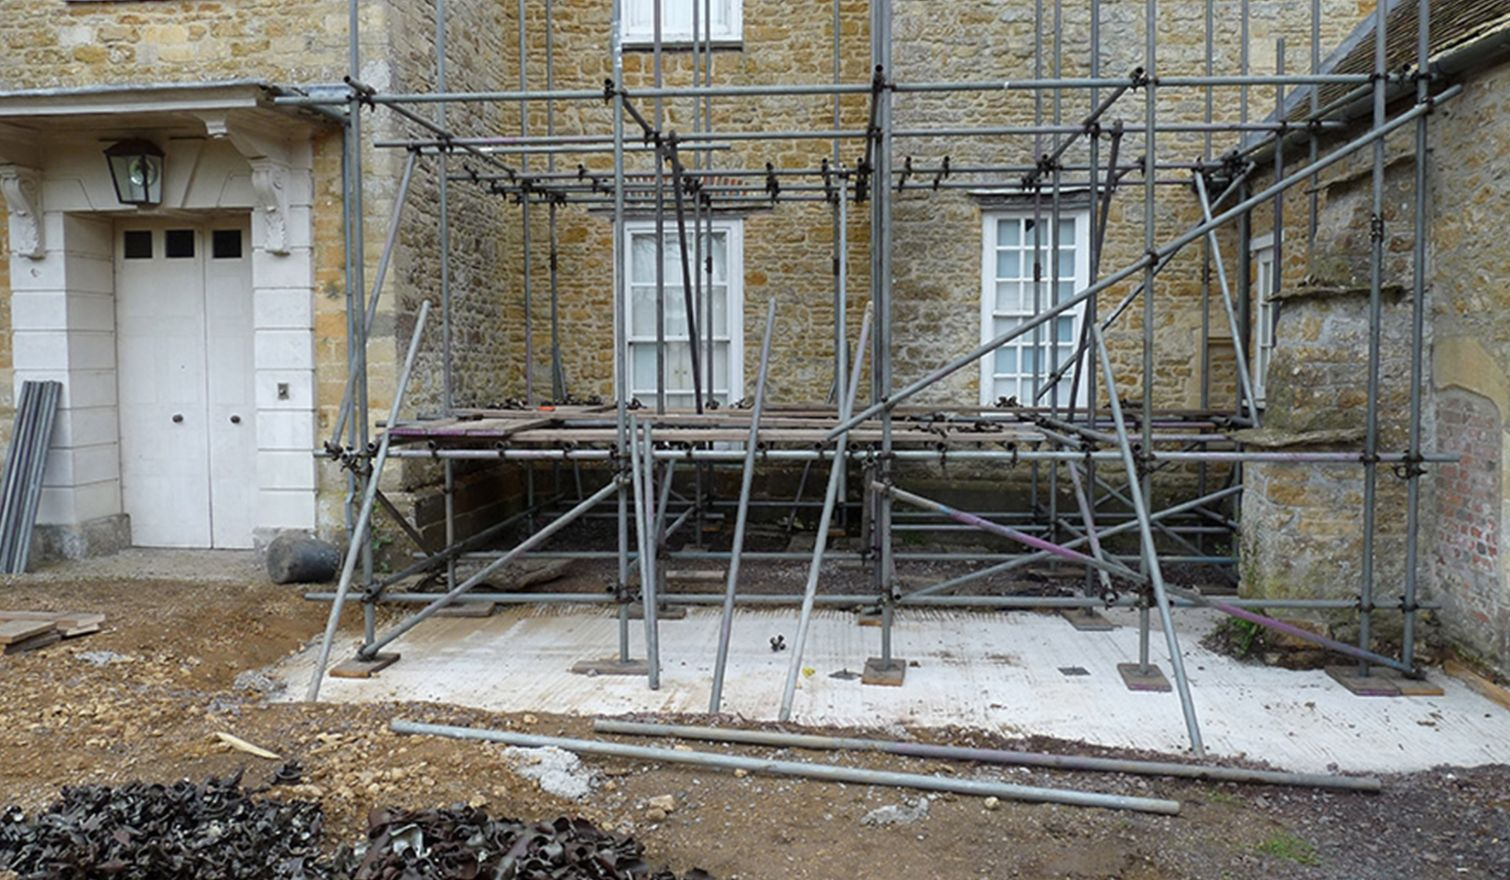 Shanks House - Freestanding Layher Temporary Roof & Access Scaffold